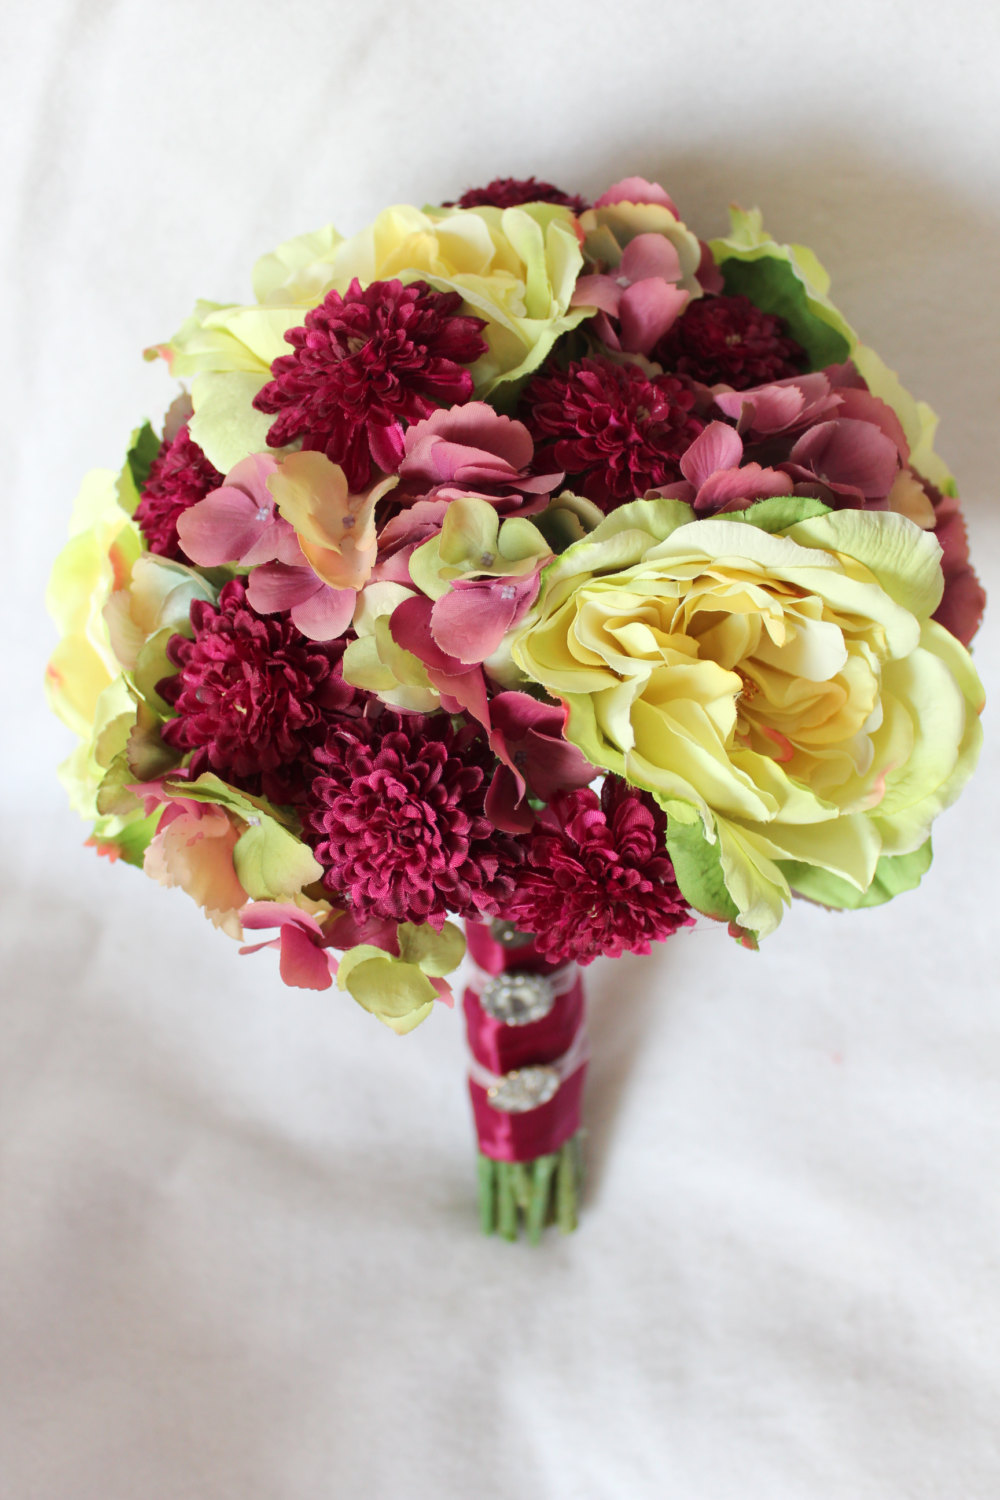 minneapolis-silk-florist-Pale-Green-and-Sangria-Silk-Bouquet-of-Garden-Roses-Pom-Pom-Mums-and-Hydrangea-with-Ribbon-and-Button-Accent-andMatching-Boutonniere.jpg